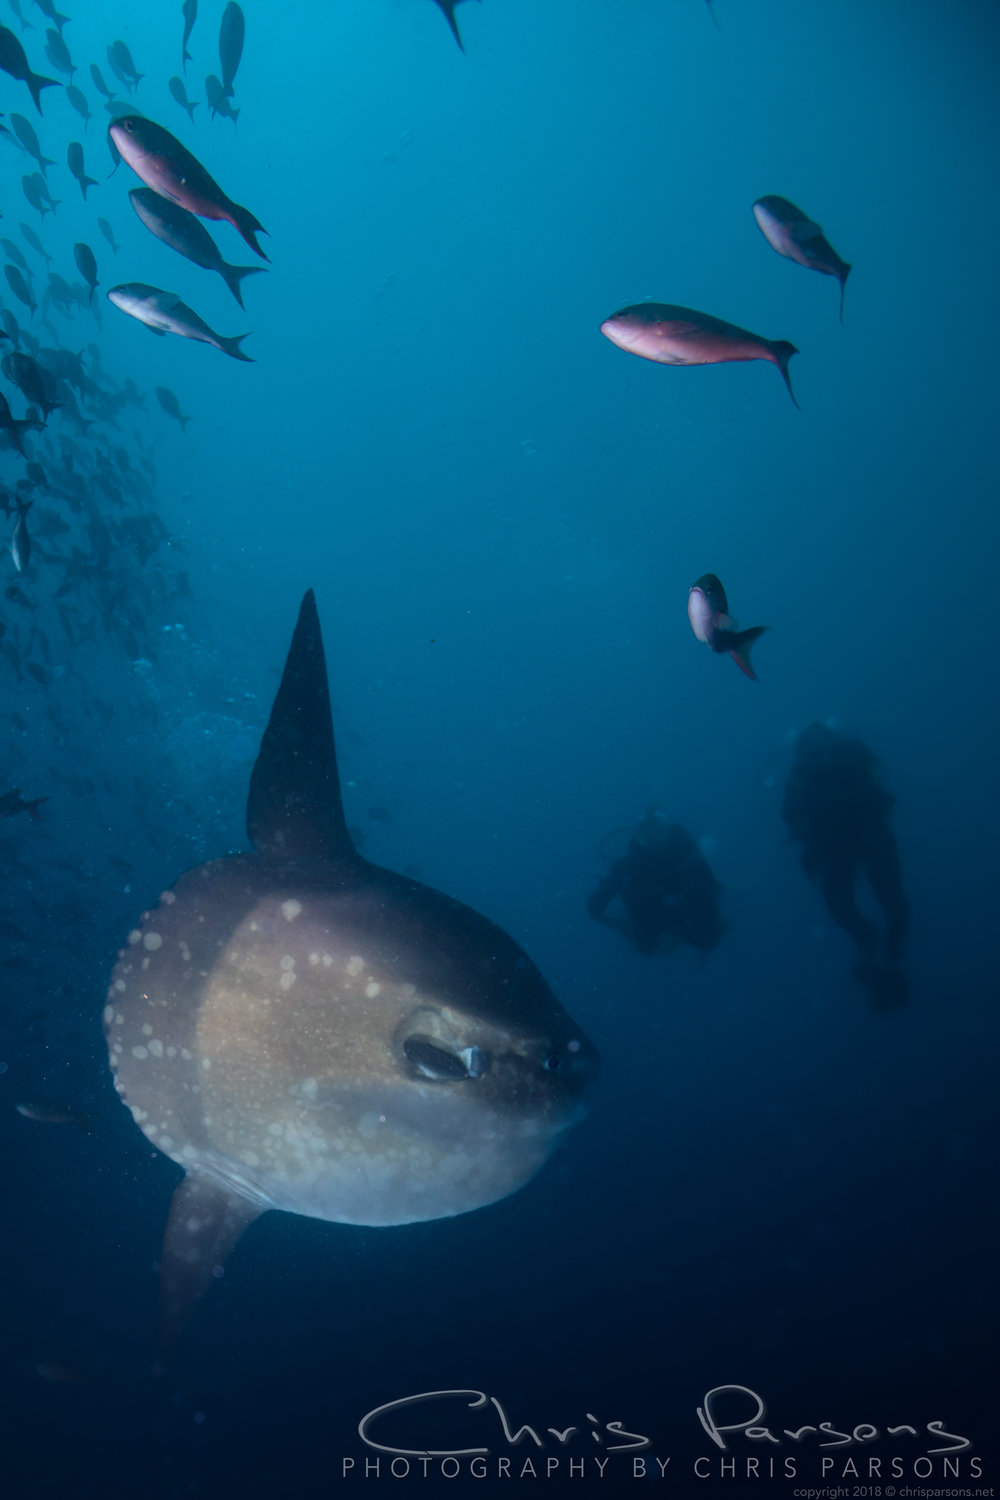 And finally, the Mola Mola….